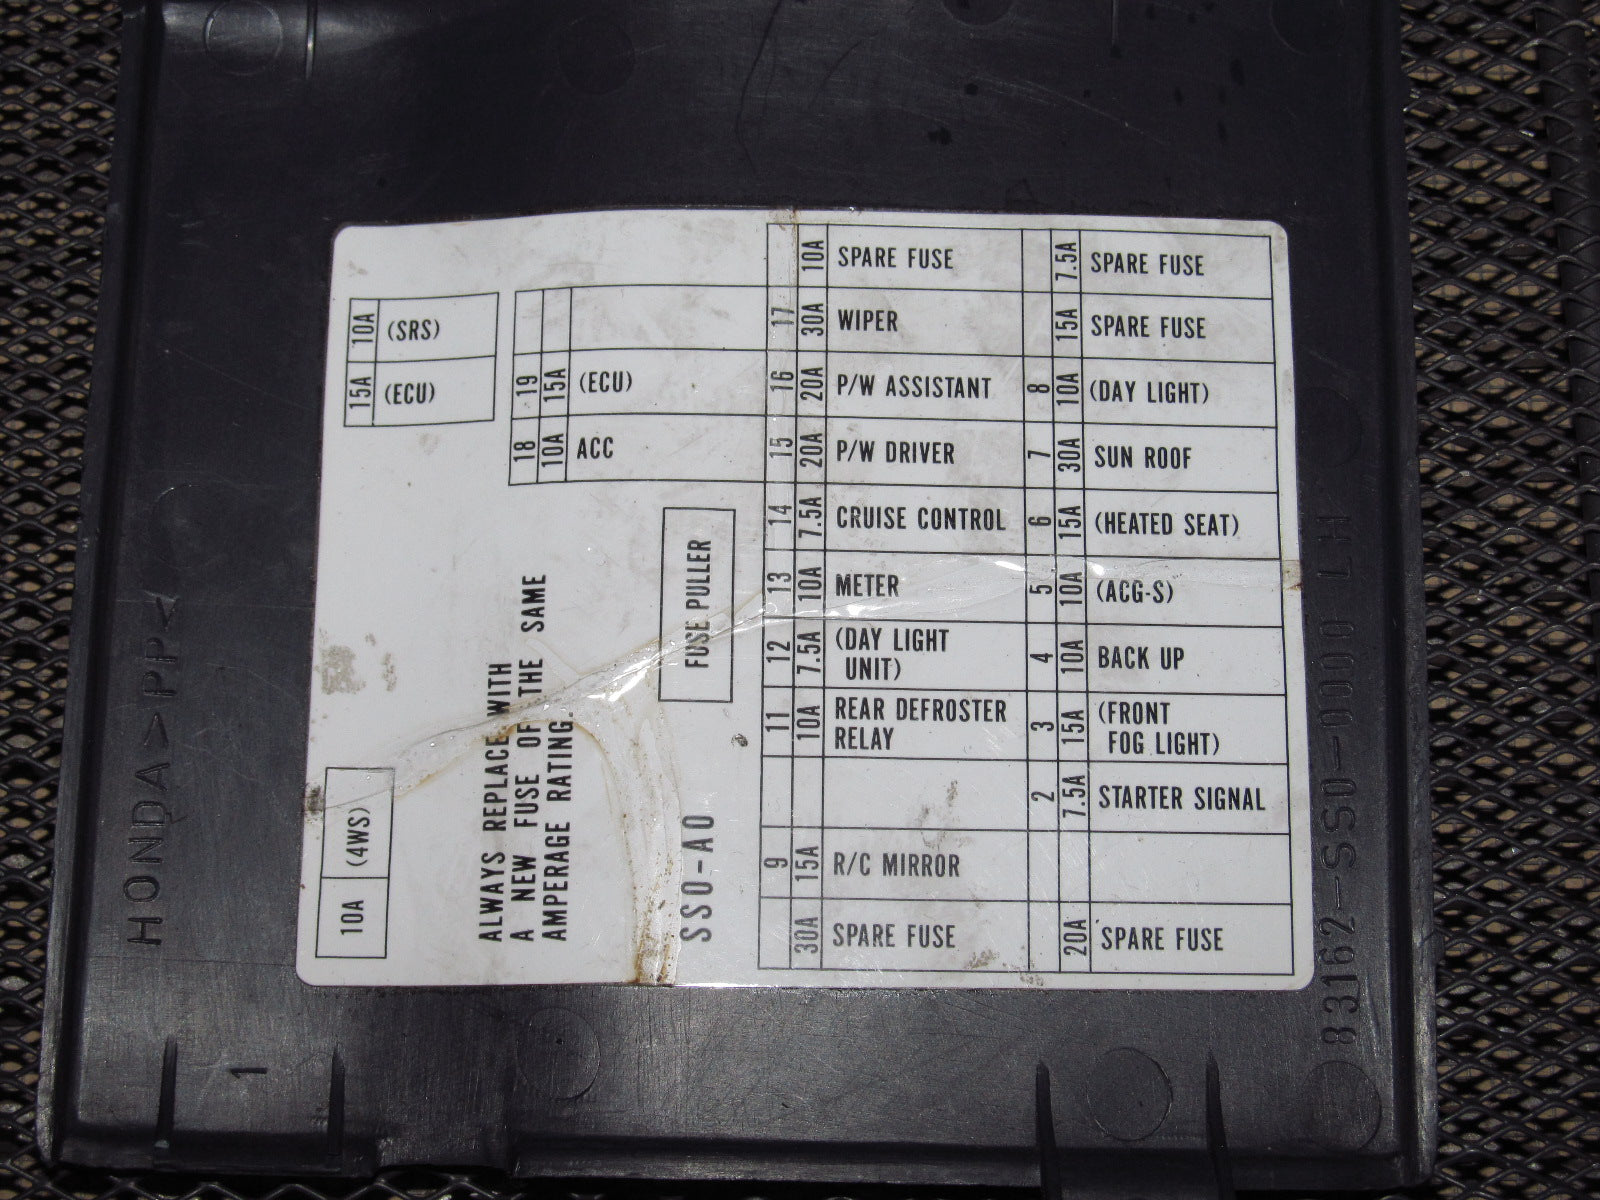 91 Honda Prelude Fuse Box | Wiring Diagram on 99 civic fuse diagram, 93 civic fuse diagram, 95 civic fuse diagram, 92 prelude alternator diagram, 91 civic fuse diagram, honda prelude fuse diagram, 1999 honda accord fuse diagram, 00 civic fuse diagram, 96 honda accord fuse diagram, 2001 honda accord fuse diagram, 94 civic fuse diagram, 98 civic fuse diagram,